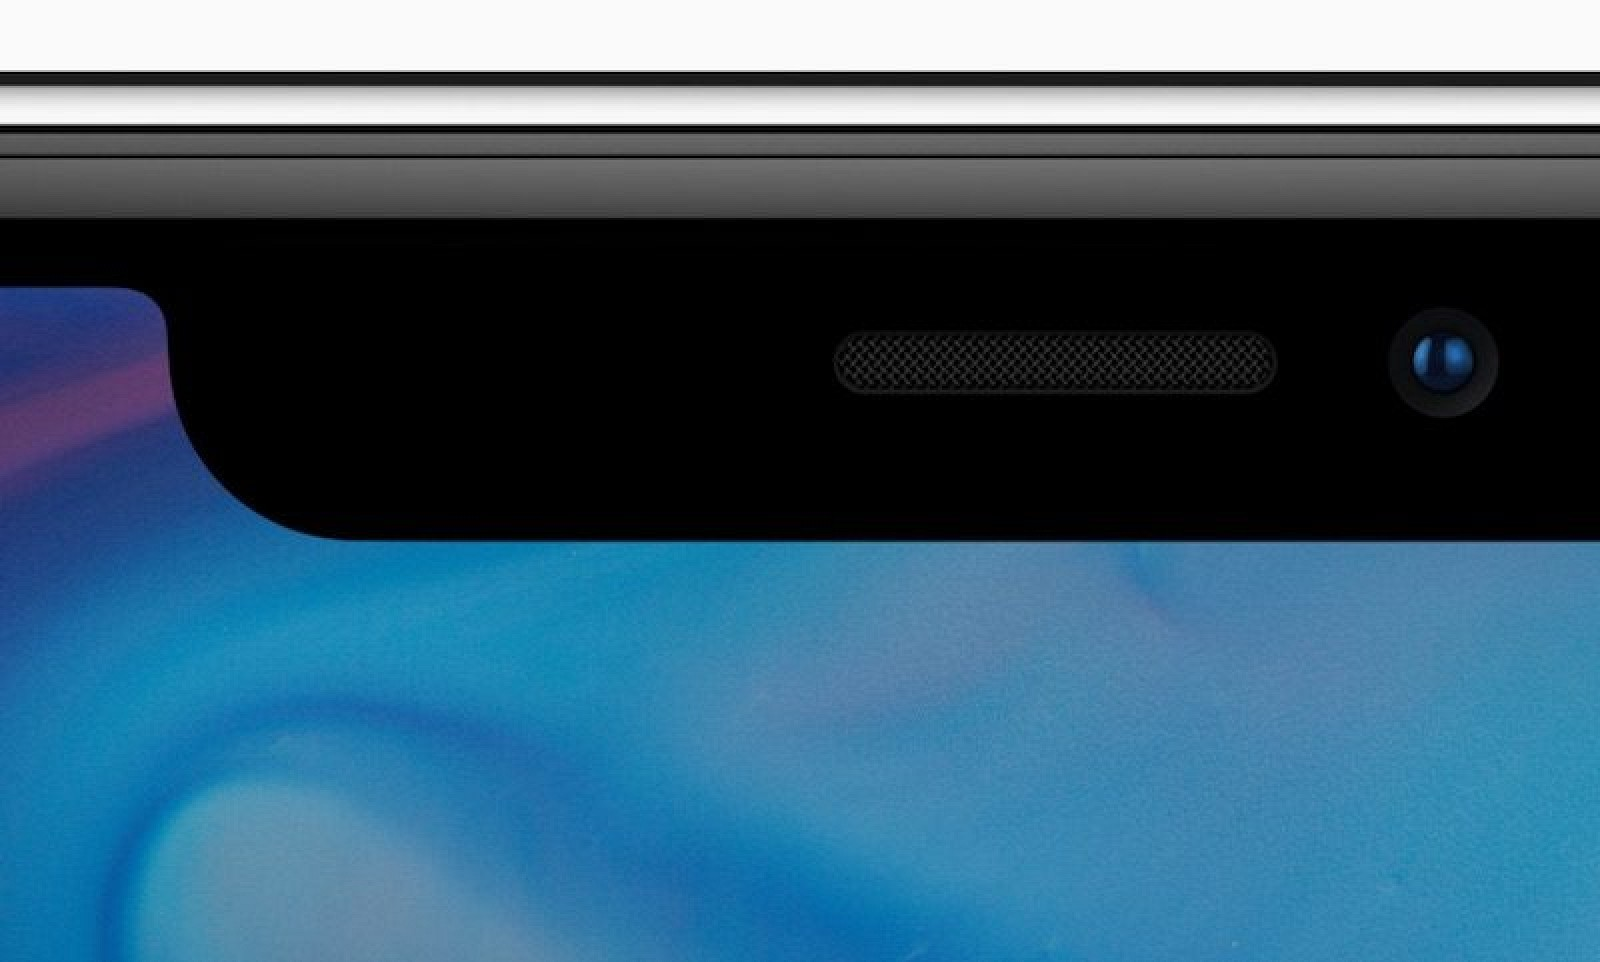 TrueDepth Camera System is Primary Reason for Slow iPhone X Production